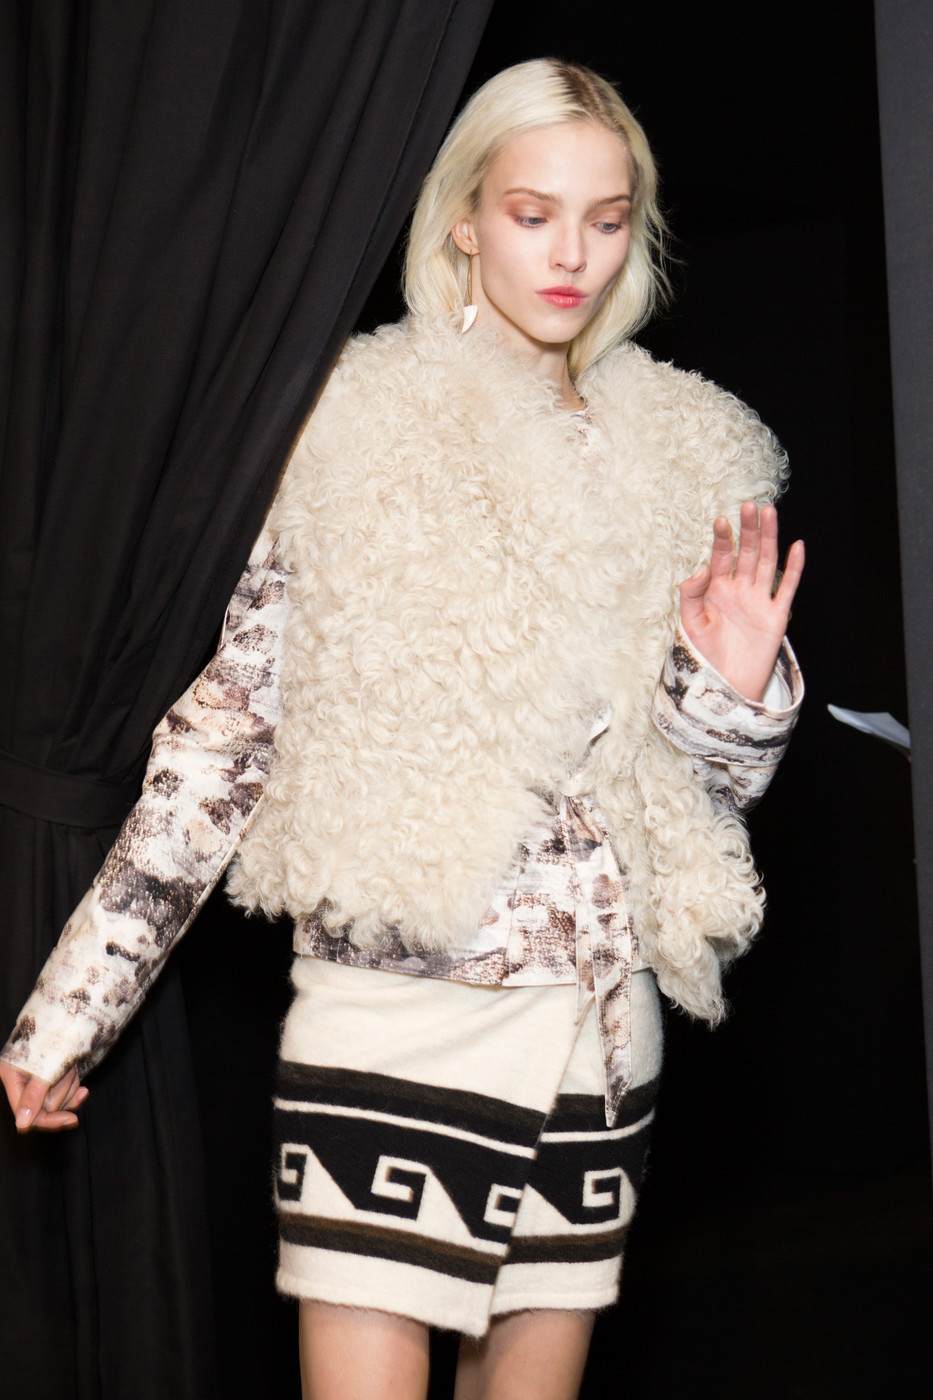 Isabel+Marant+Fall+2014+Backstage+04TrF2aL-VNx.jpg